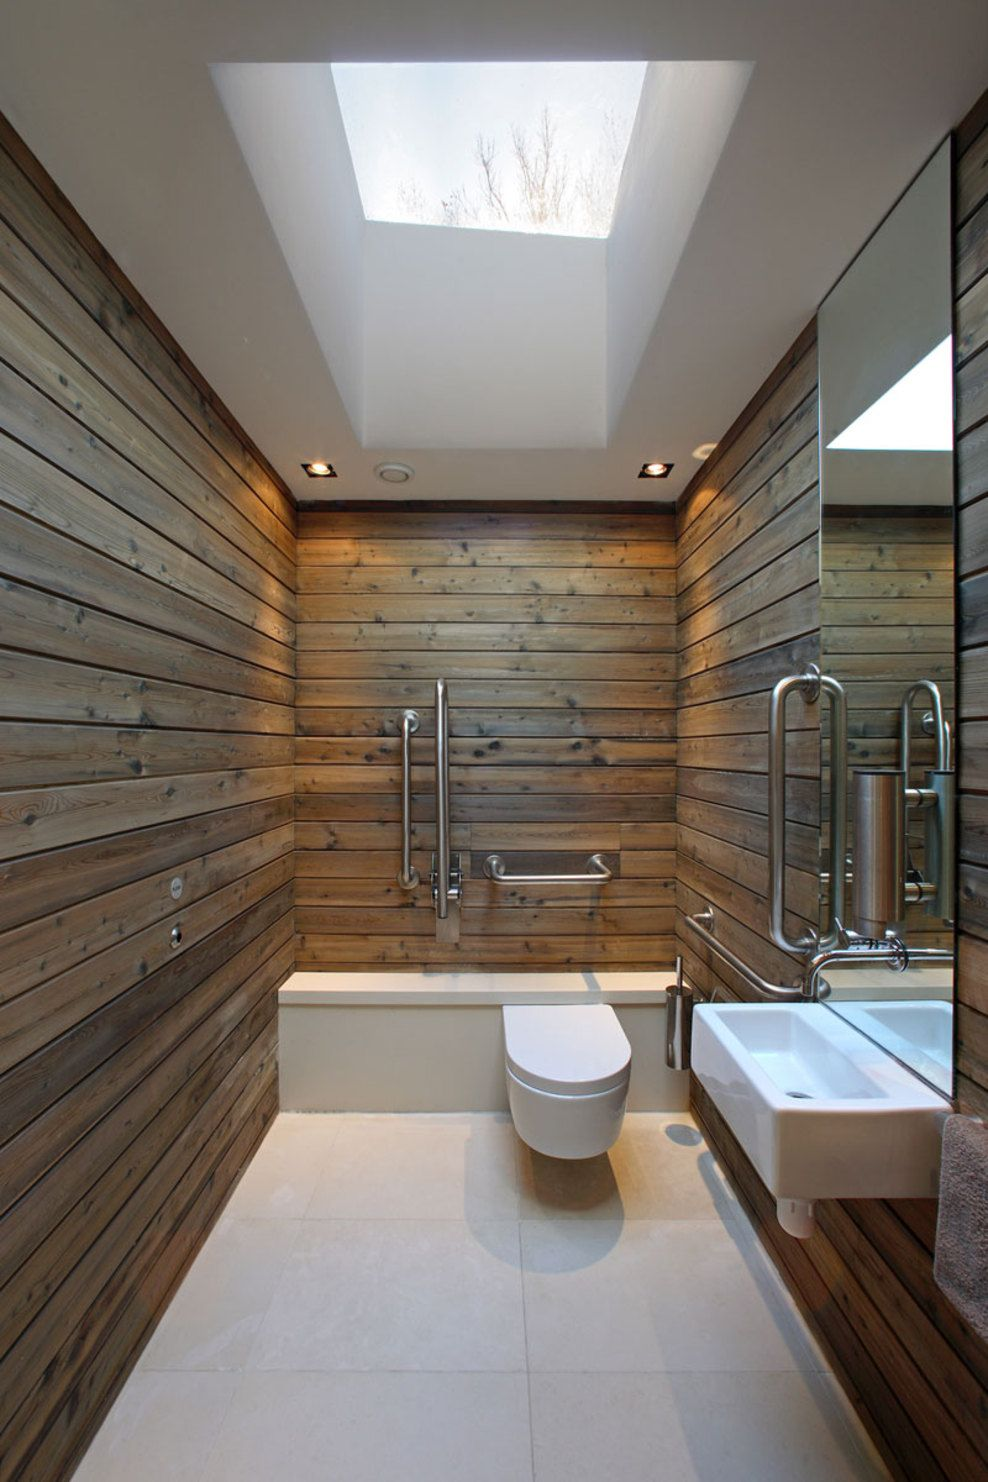 Forget That It S A Bathroom Changing Gears With Light Flooring And The Wood Cladding Narrow Bathroom Designs Rustic Bathroom Designs Wooden Bathroom